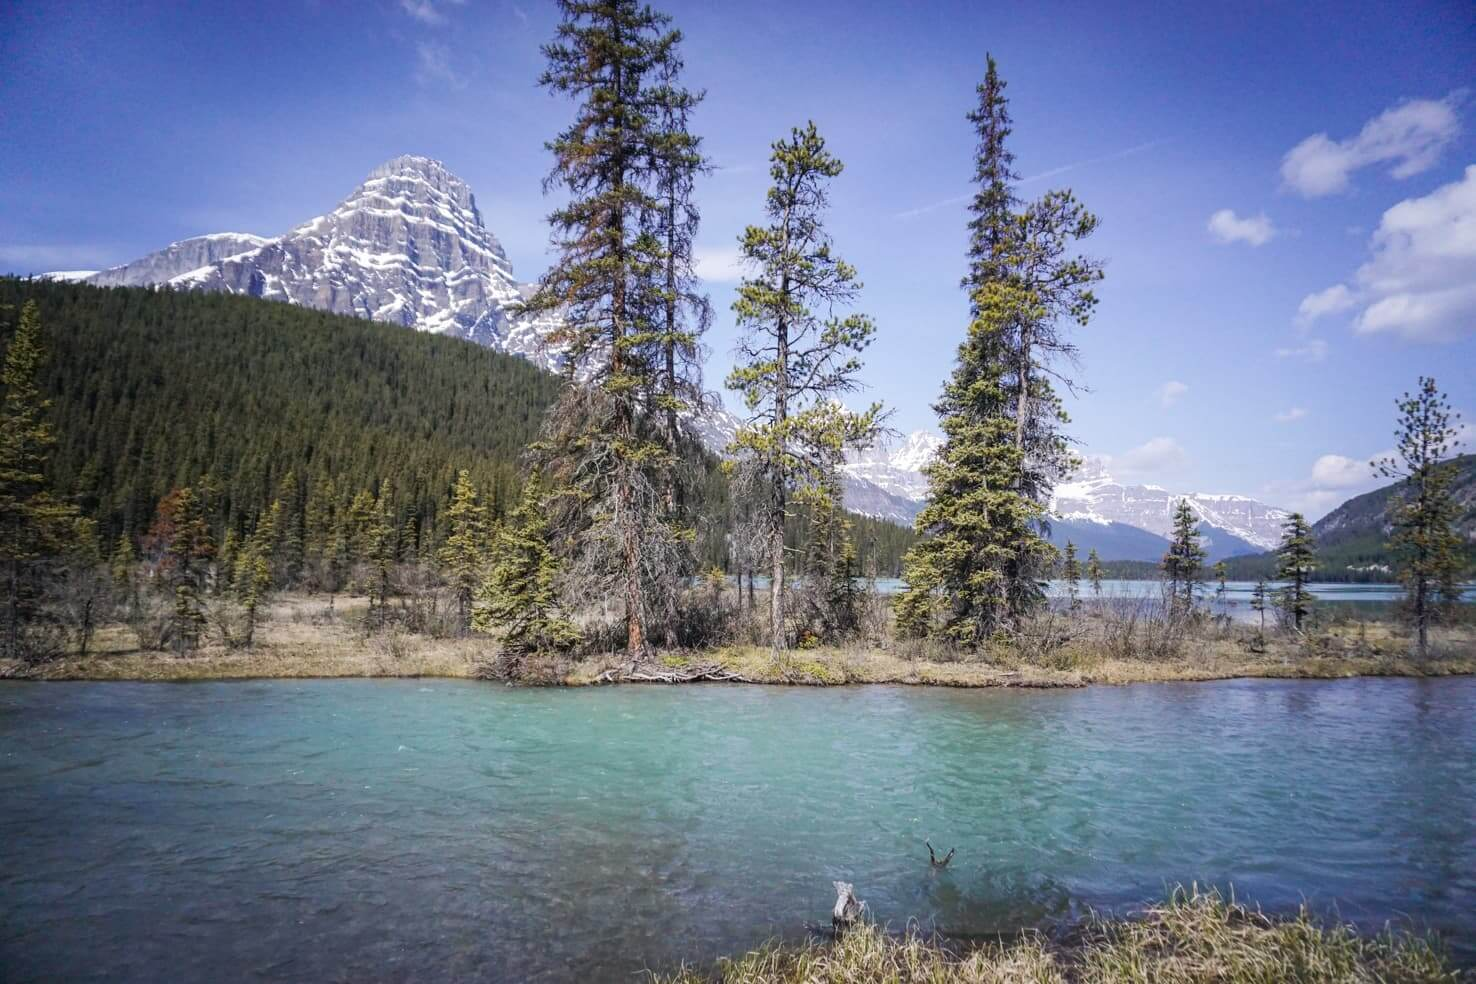 Camping in Banff National Park - Waterfowl Lakes Campground